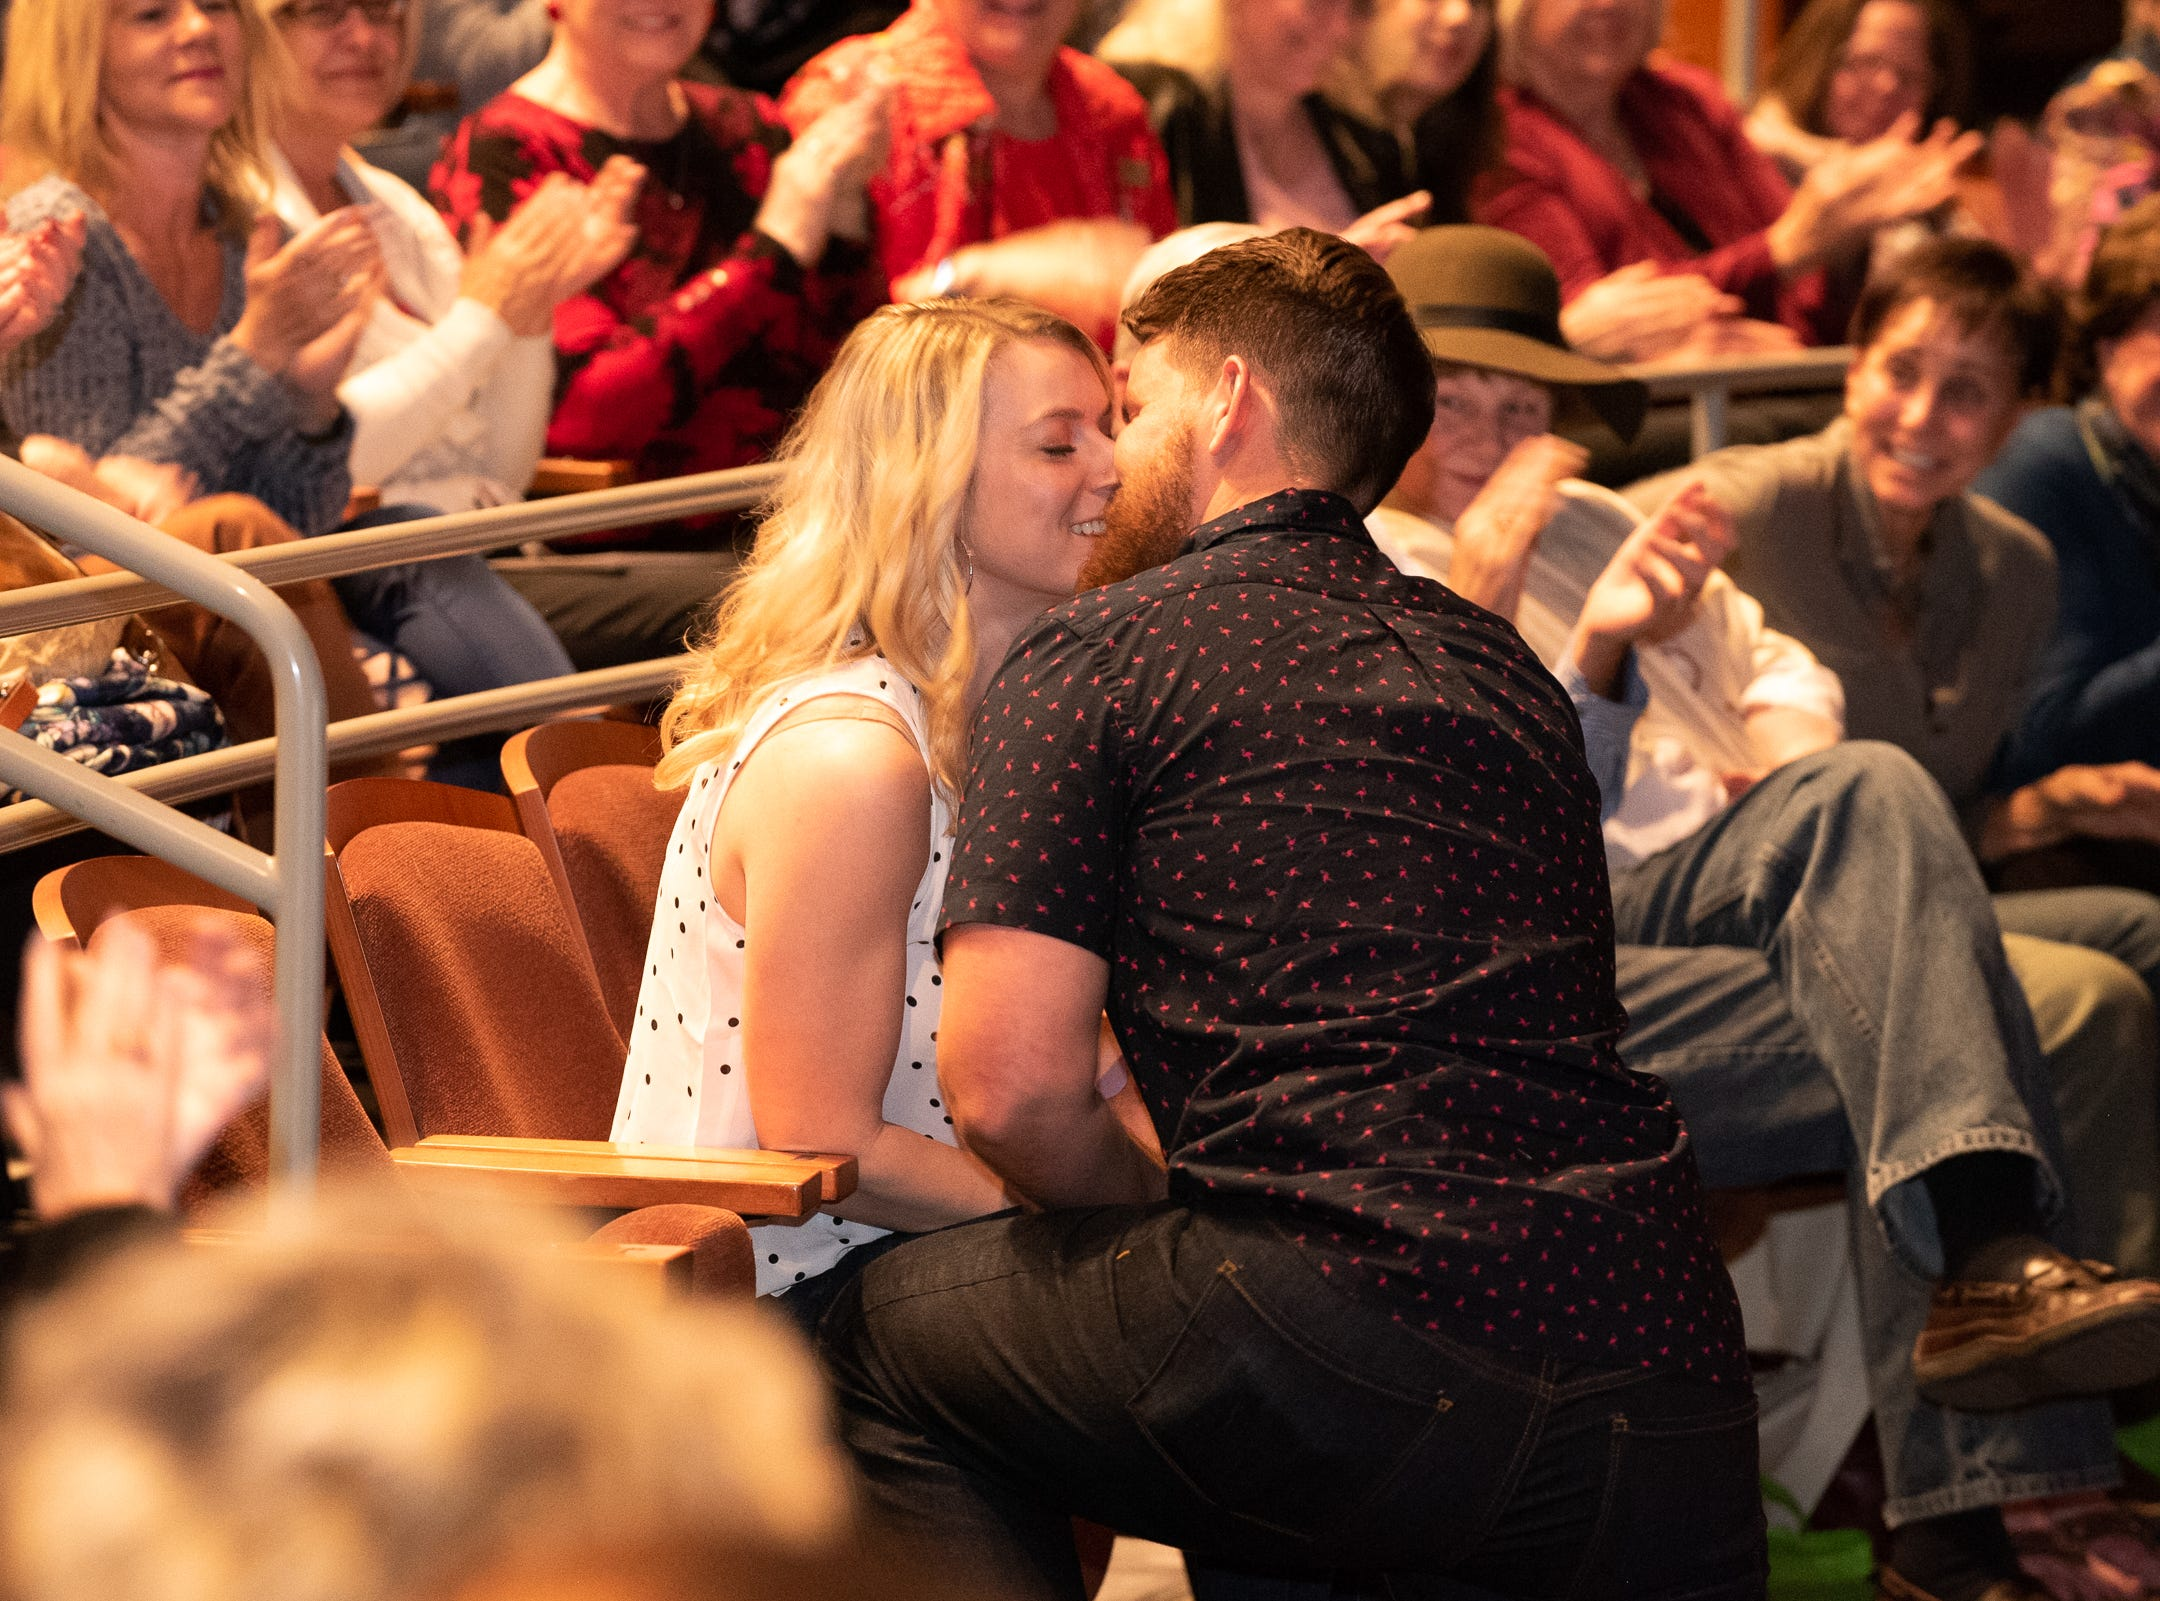 """Josh Shore surprises the audience by proposing to his girlfriend Kristin Harris during """"Arizona Storytellers: Romance or Not"""" at Scottsdale Center for the Performing Arts in Scottsdale, Ariz., Wednesday, Feb. 13, 2019."""